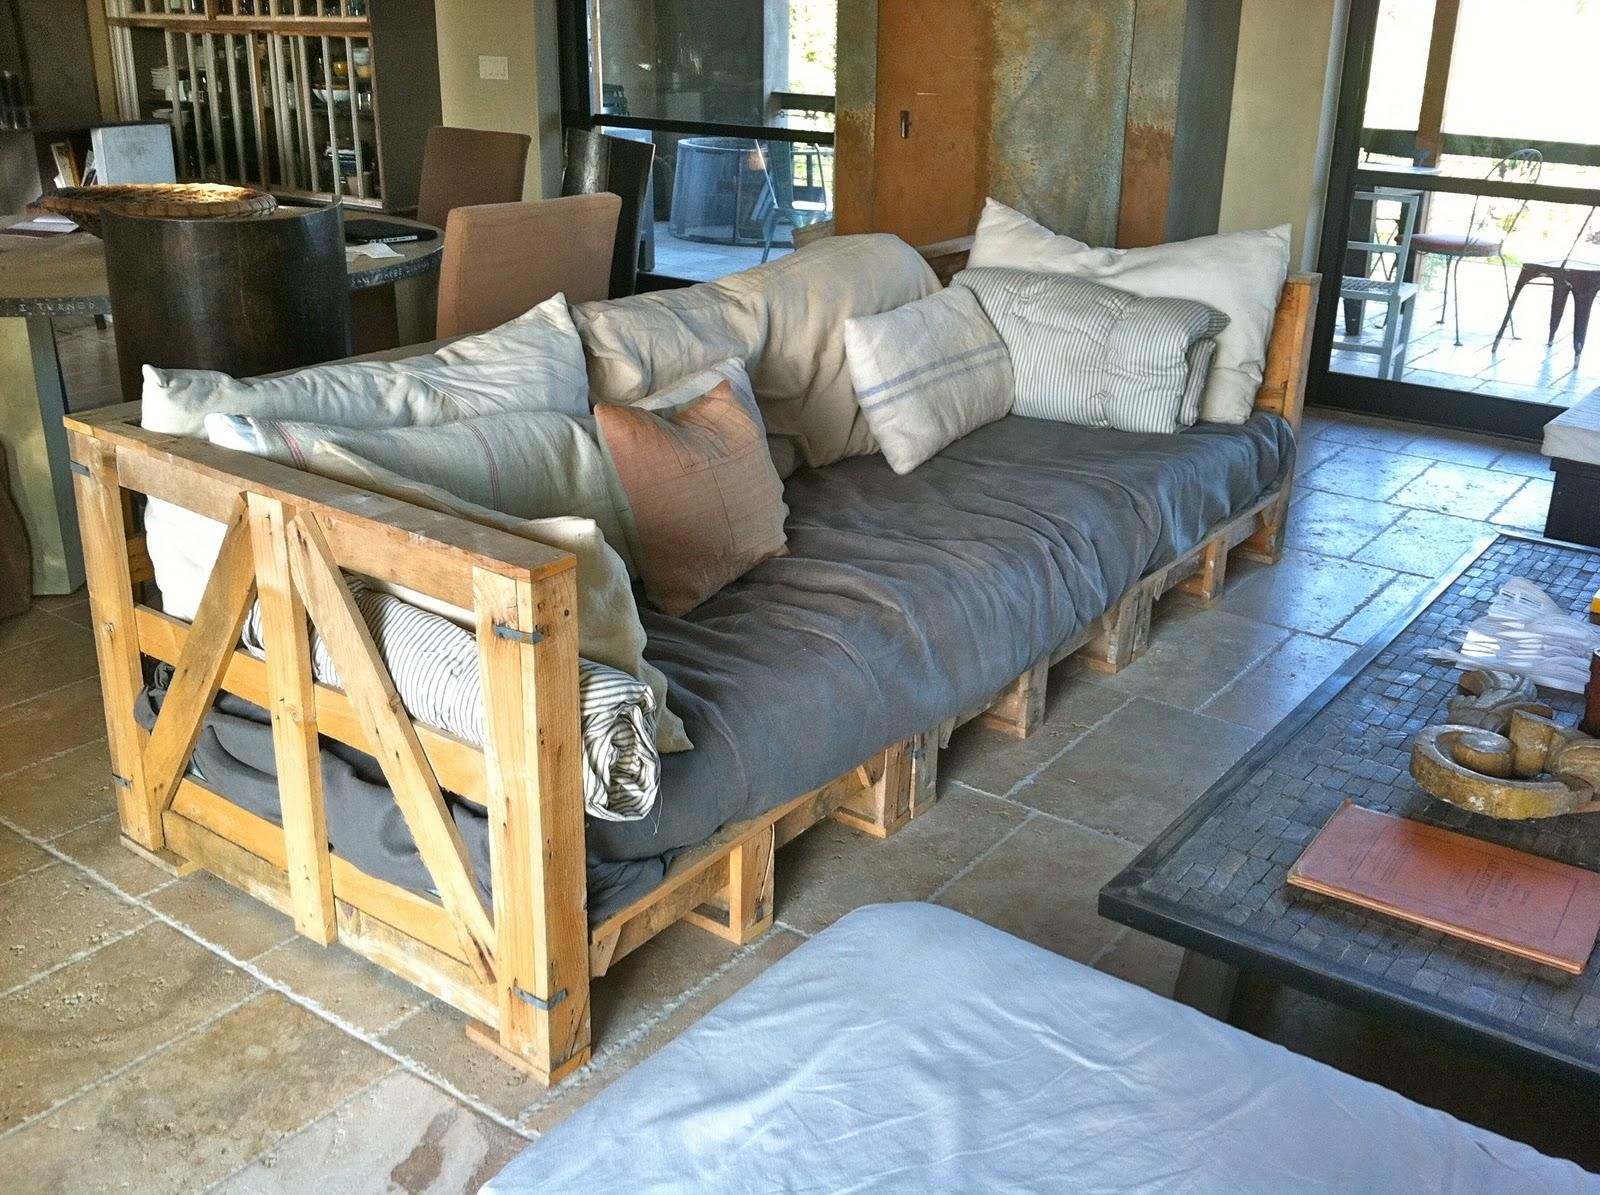 Recycle Reuse Renew Mother Earth Projects How To Make A Pallet Couch And Bed